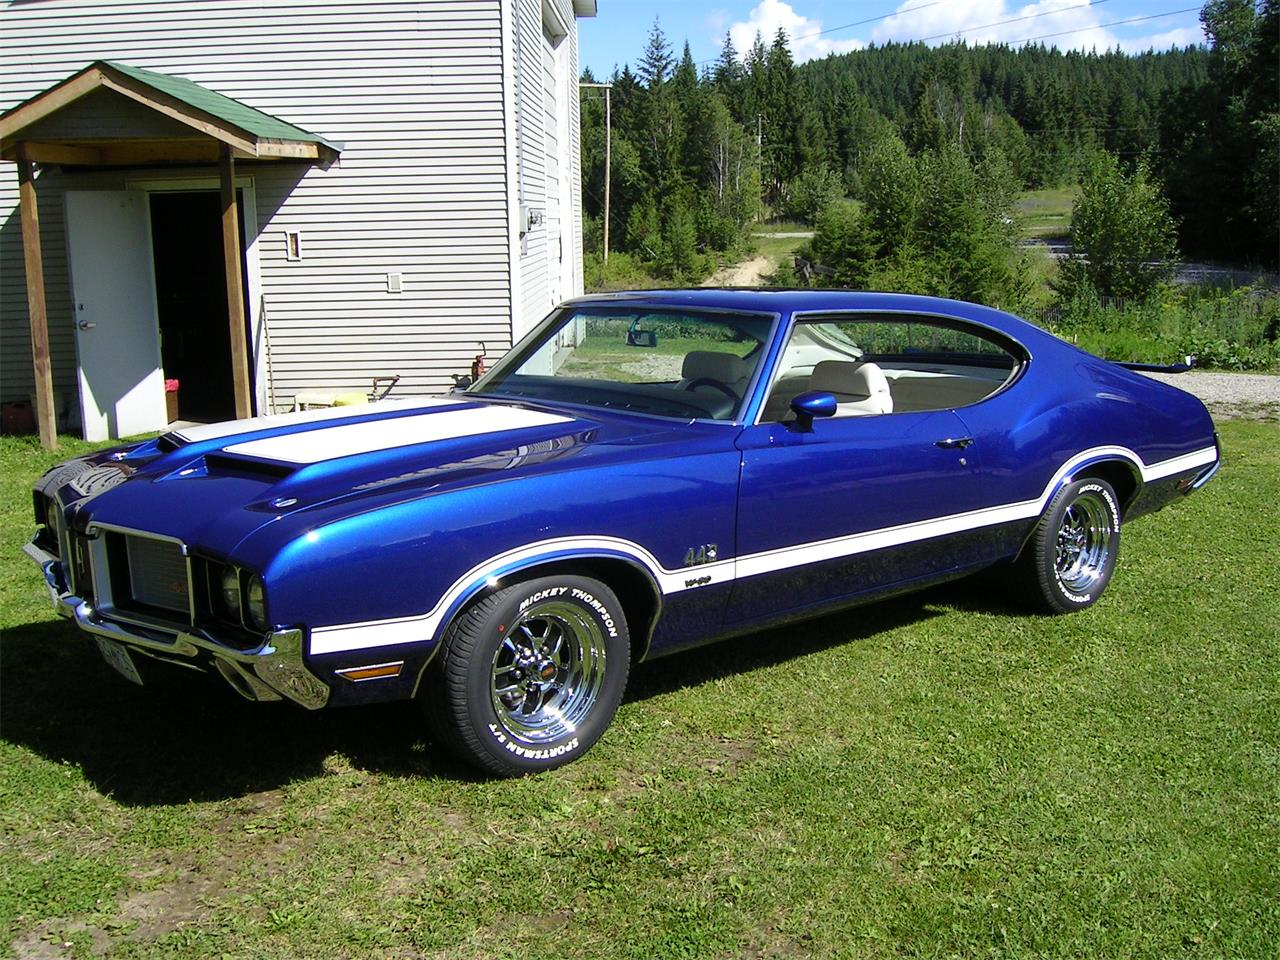 9442820-1972-oldsmobile-442-w-30-std.jpg